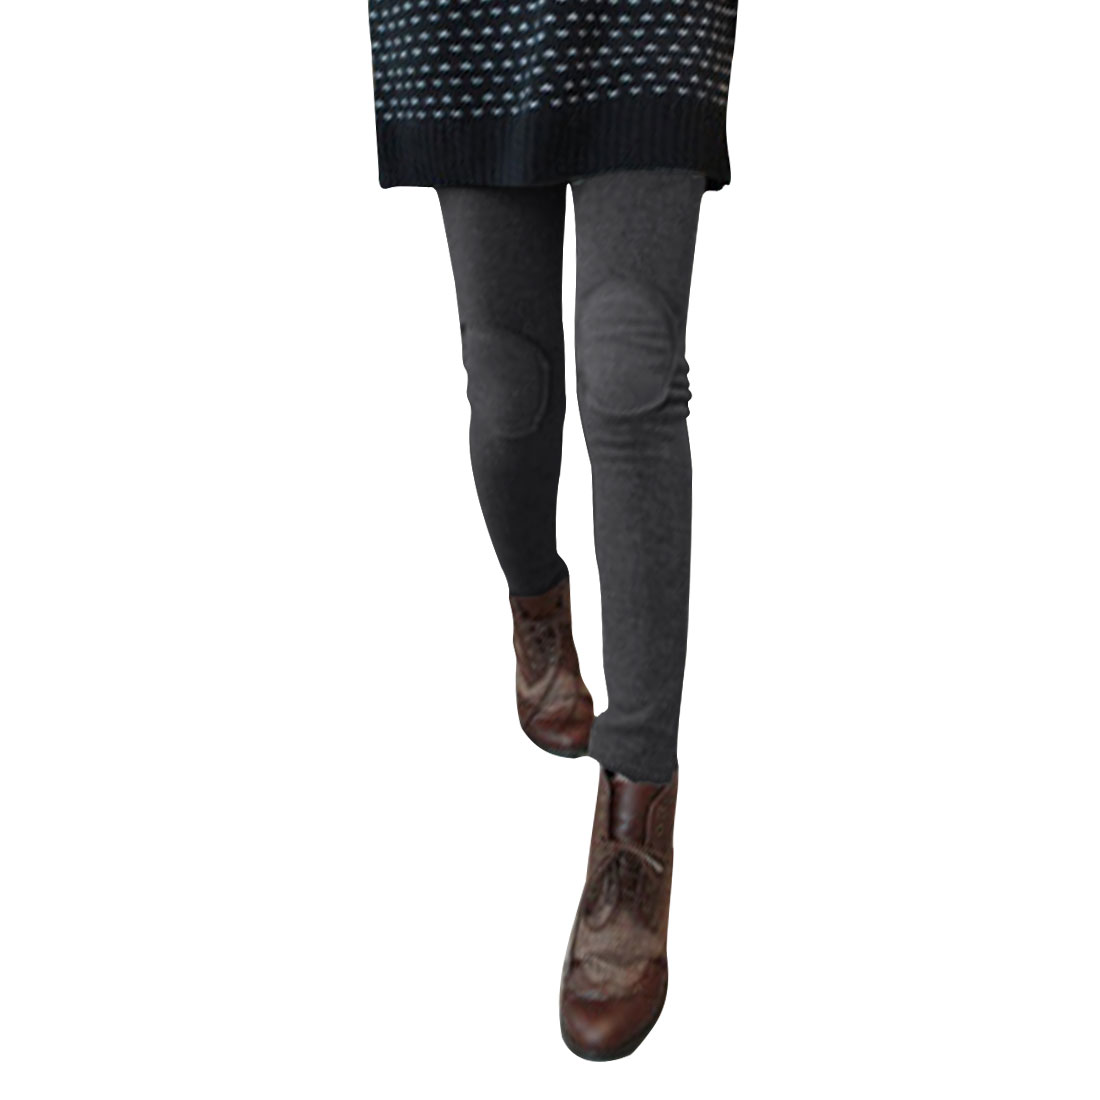 Ladies Dark Gray Mid Rise Fashional Casual Winter Leggings XS